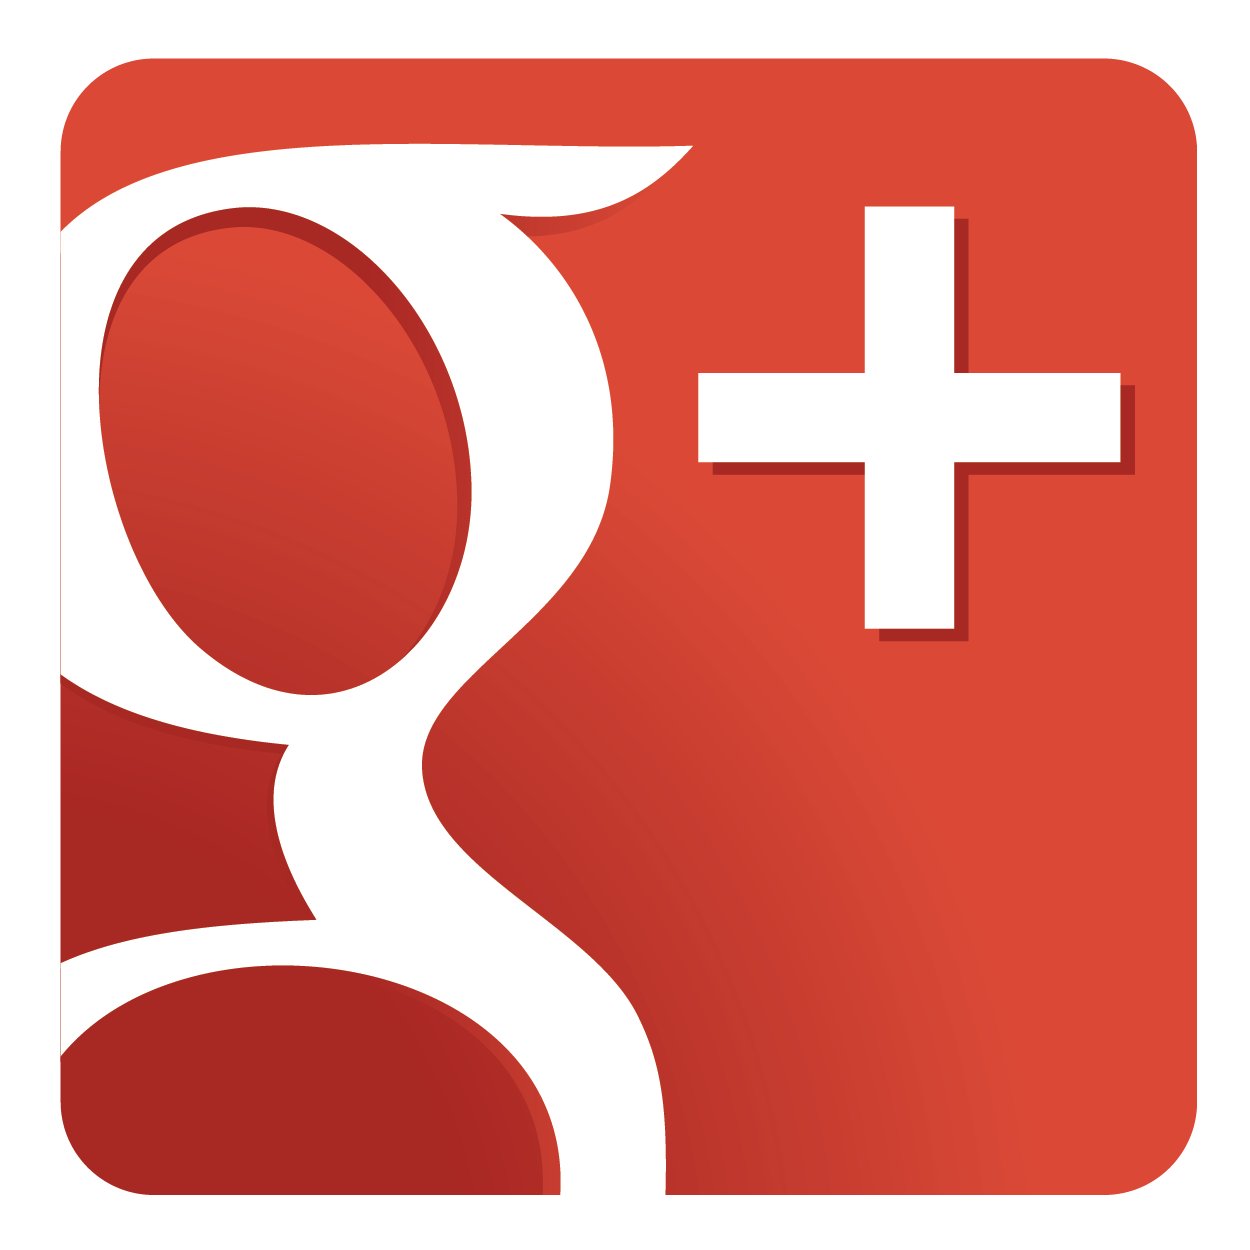 onlineindiaeducation on Google plus